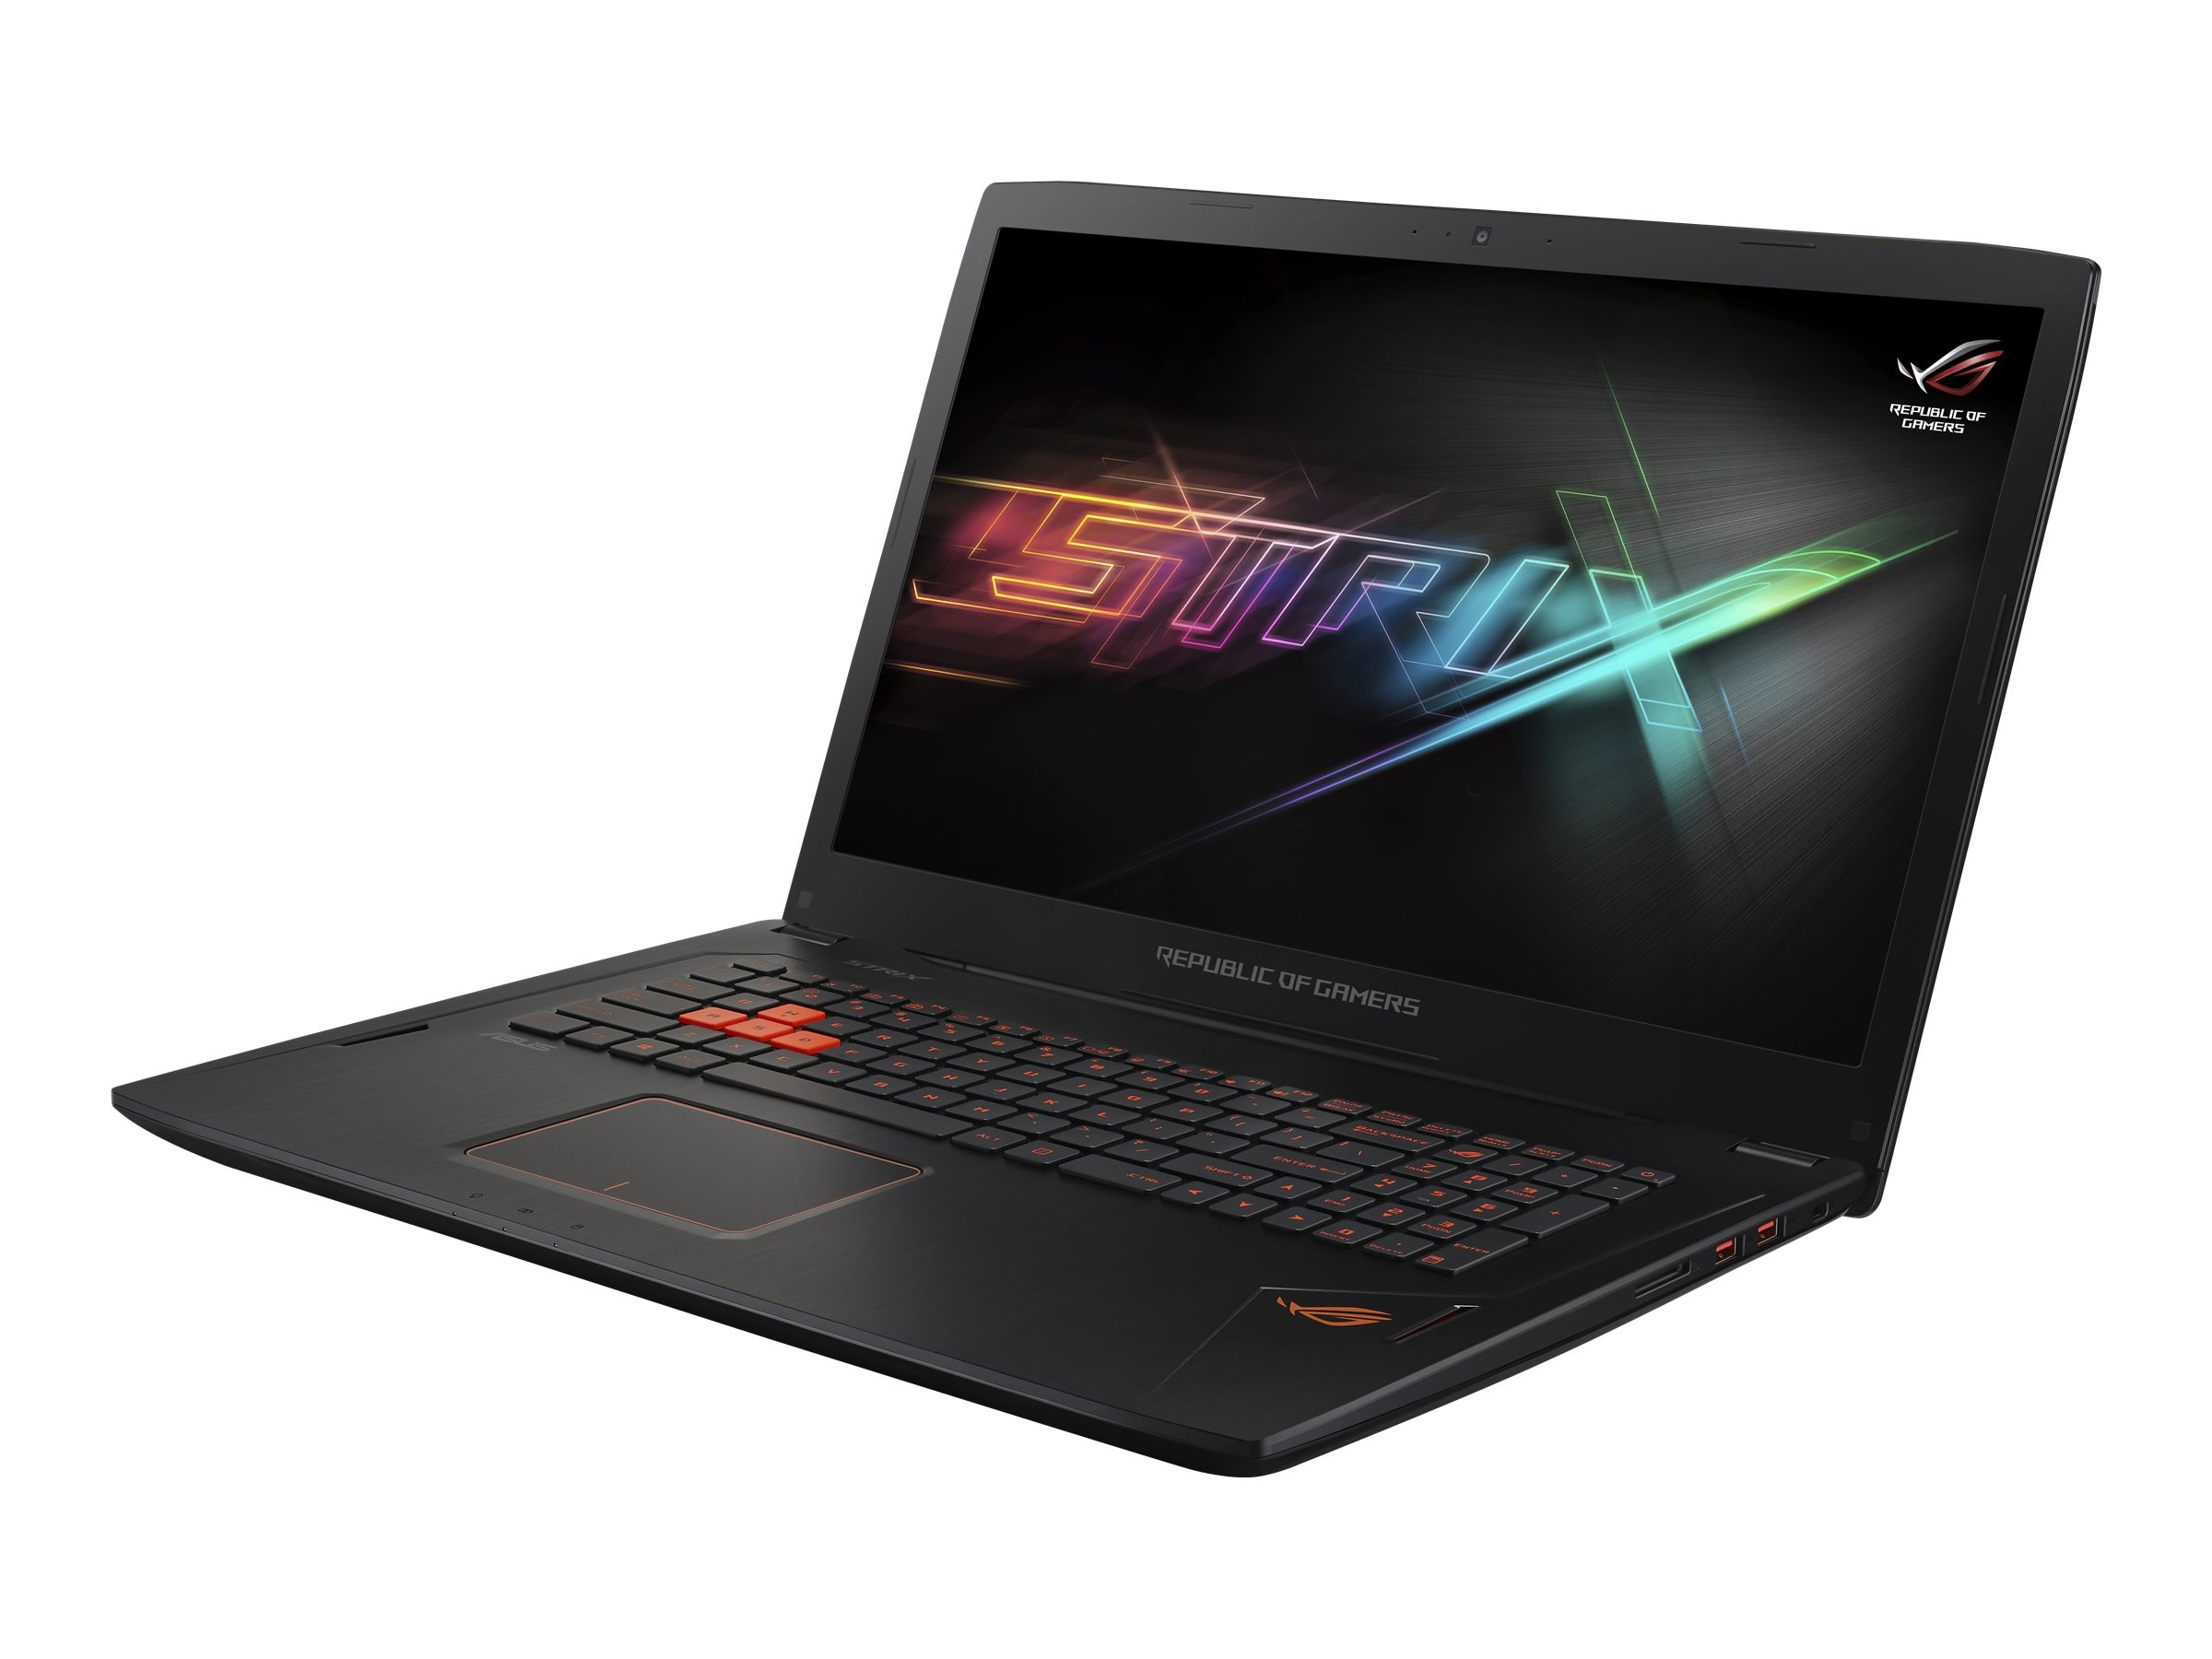 Asus GL702VM-DB71 Core i7-6700HQ 2.6GHz 16GB 1TB 17.3 W10